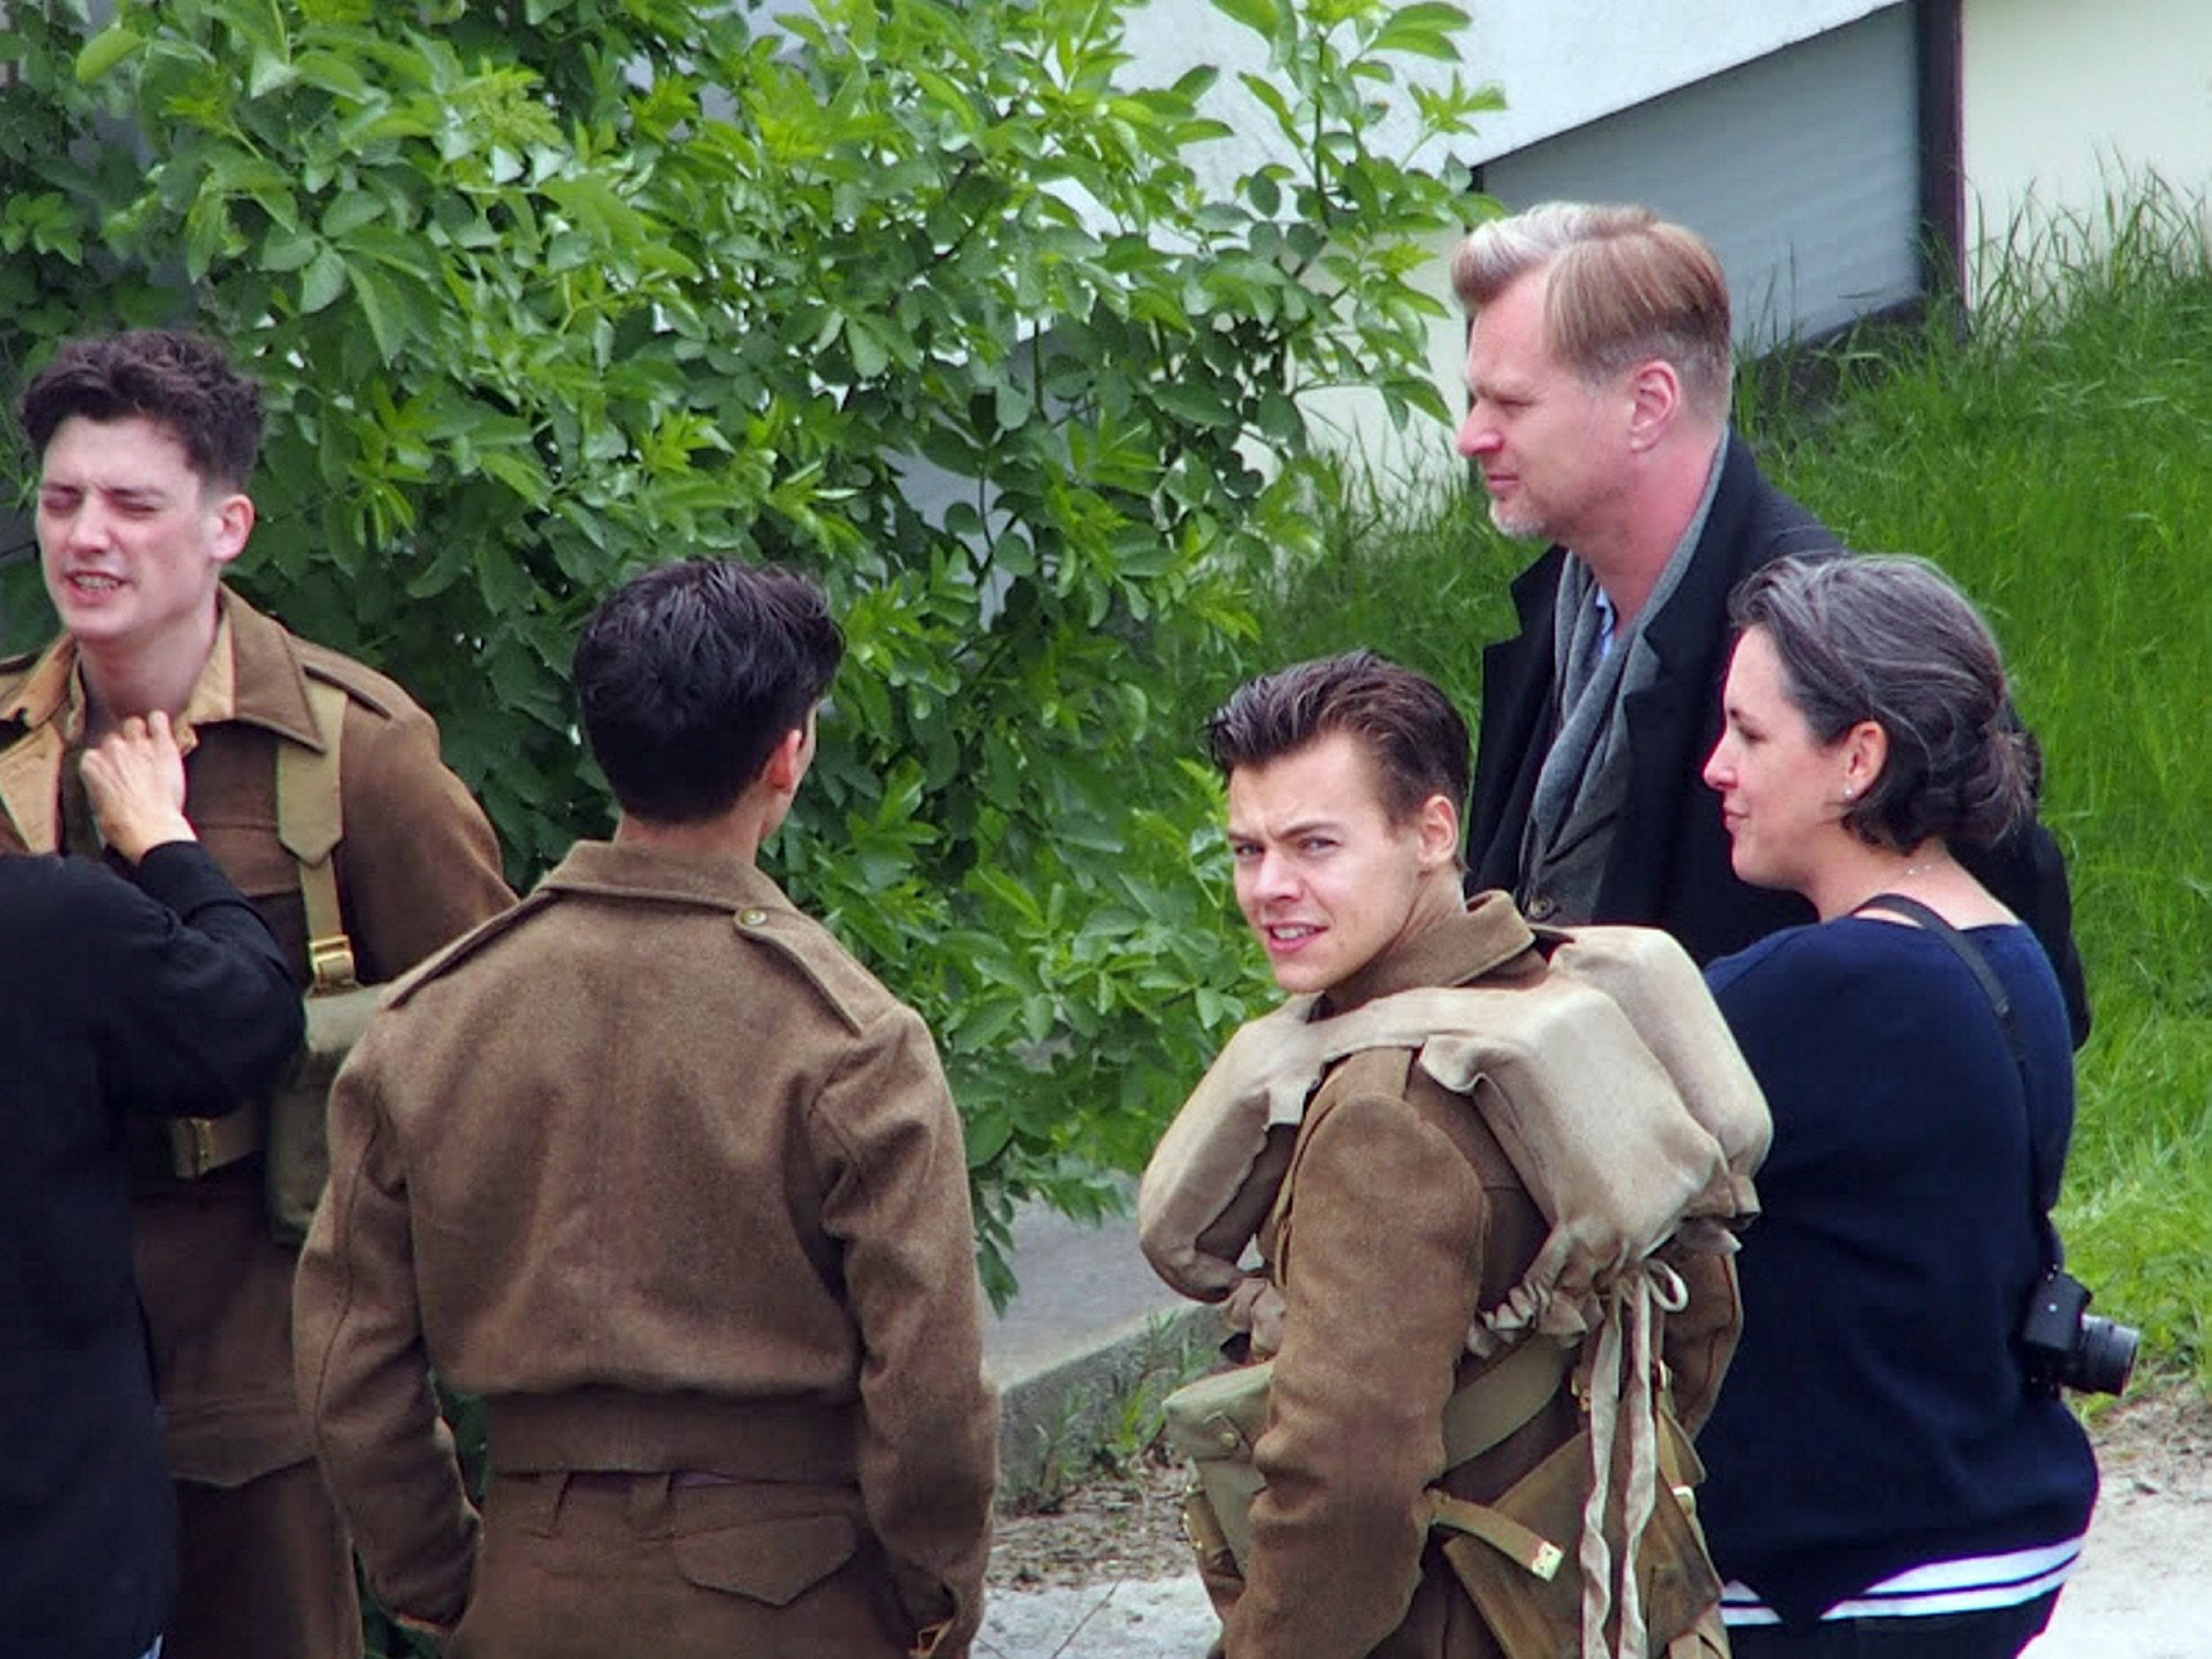 EXCLUSIVE PICTURE: MATRIXPICTURES.CO.UK PLEASE CREDIT ALL USES UK RIGHTS ONLY ***MINIMUM REPRODUCTION FEE £1,000 PER PAPER AND £1,000 PER WEBSITE*** English singer, songwriter and actor Harry Styles and English-American film director, screenwriter, and producer Christopher Nolan are seen filming scenes on the set of the new Christopher Nolan movie, Dunkirk, in France. The One Direction star sports a military-appropriate haircut for the role, which sees him playing a soldier during the Second World War. The film will also star Tom Hardy, Cillian Murphy, Mark Rylance and Kenneth Branagh. MAY 25th 2016 REF: MXP 161558